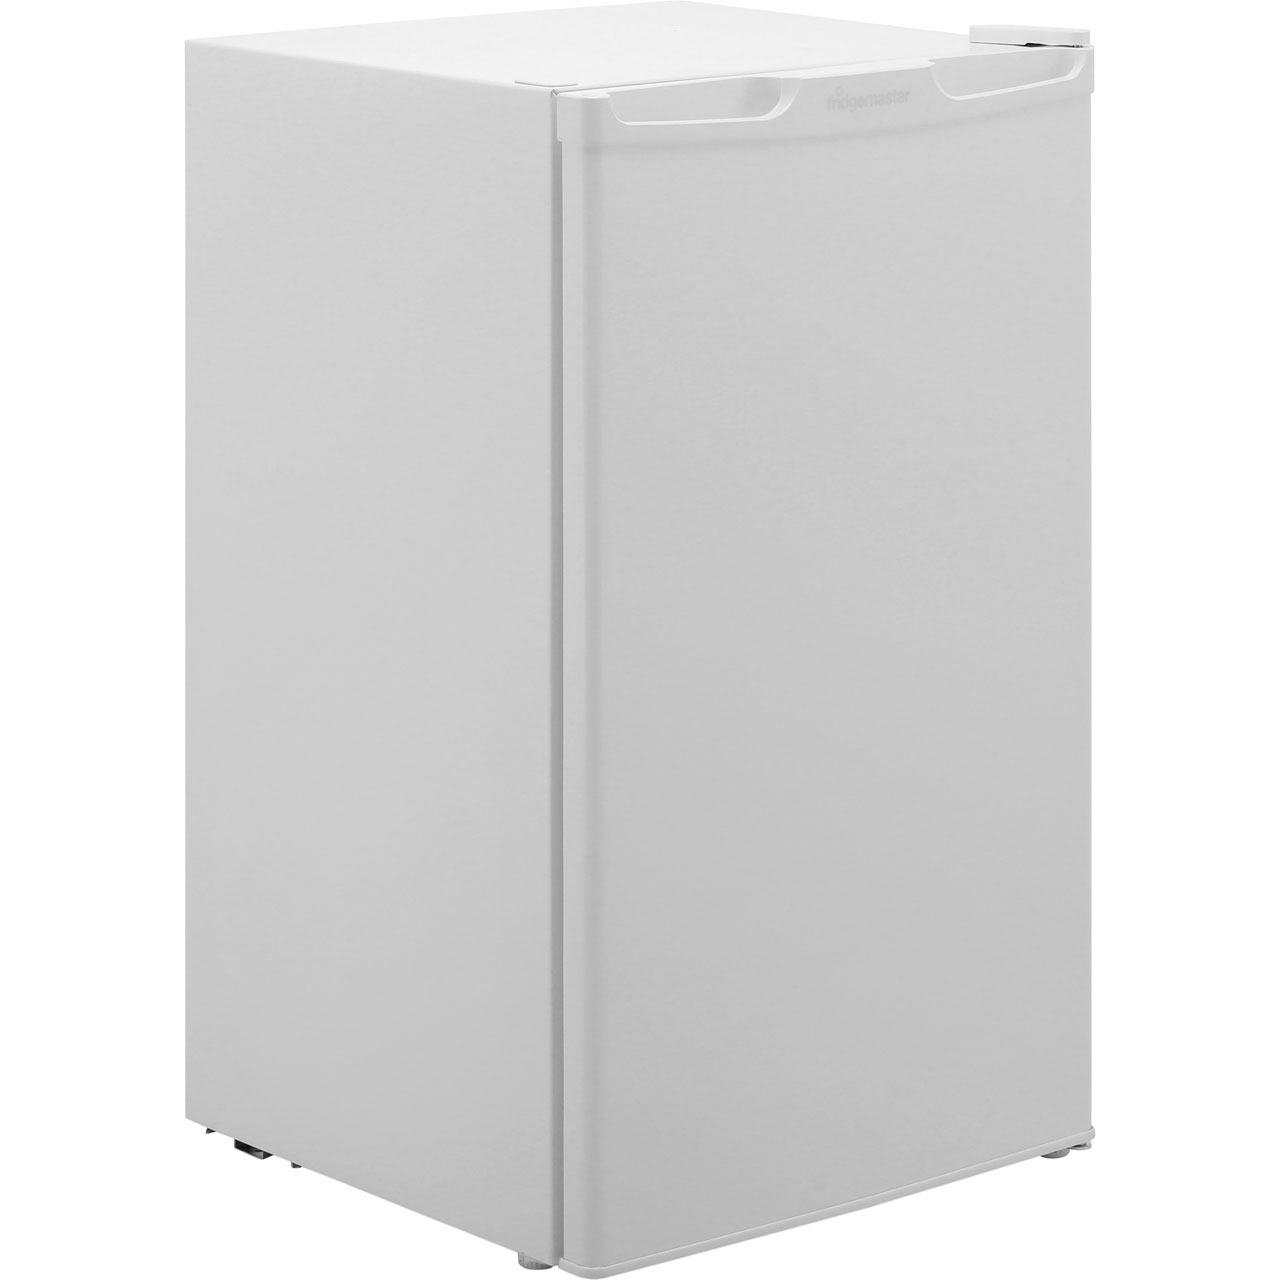 Fridgemaster MUZ4965 Free Standing Freezer in White